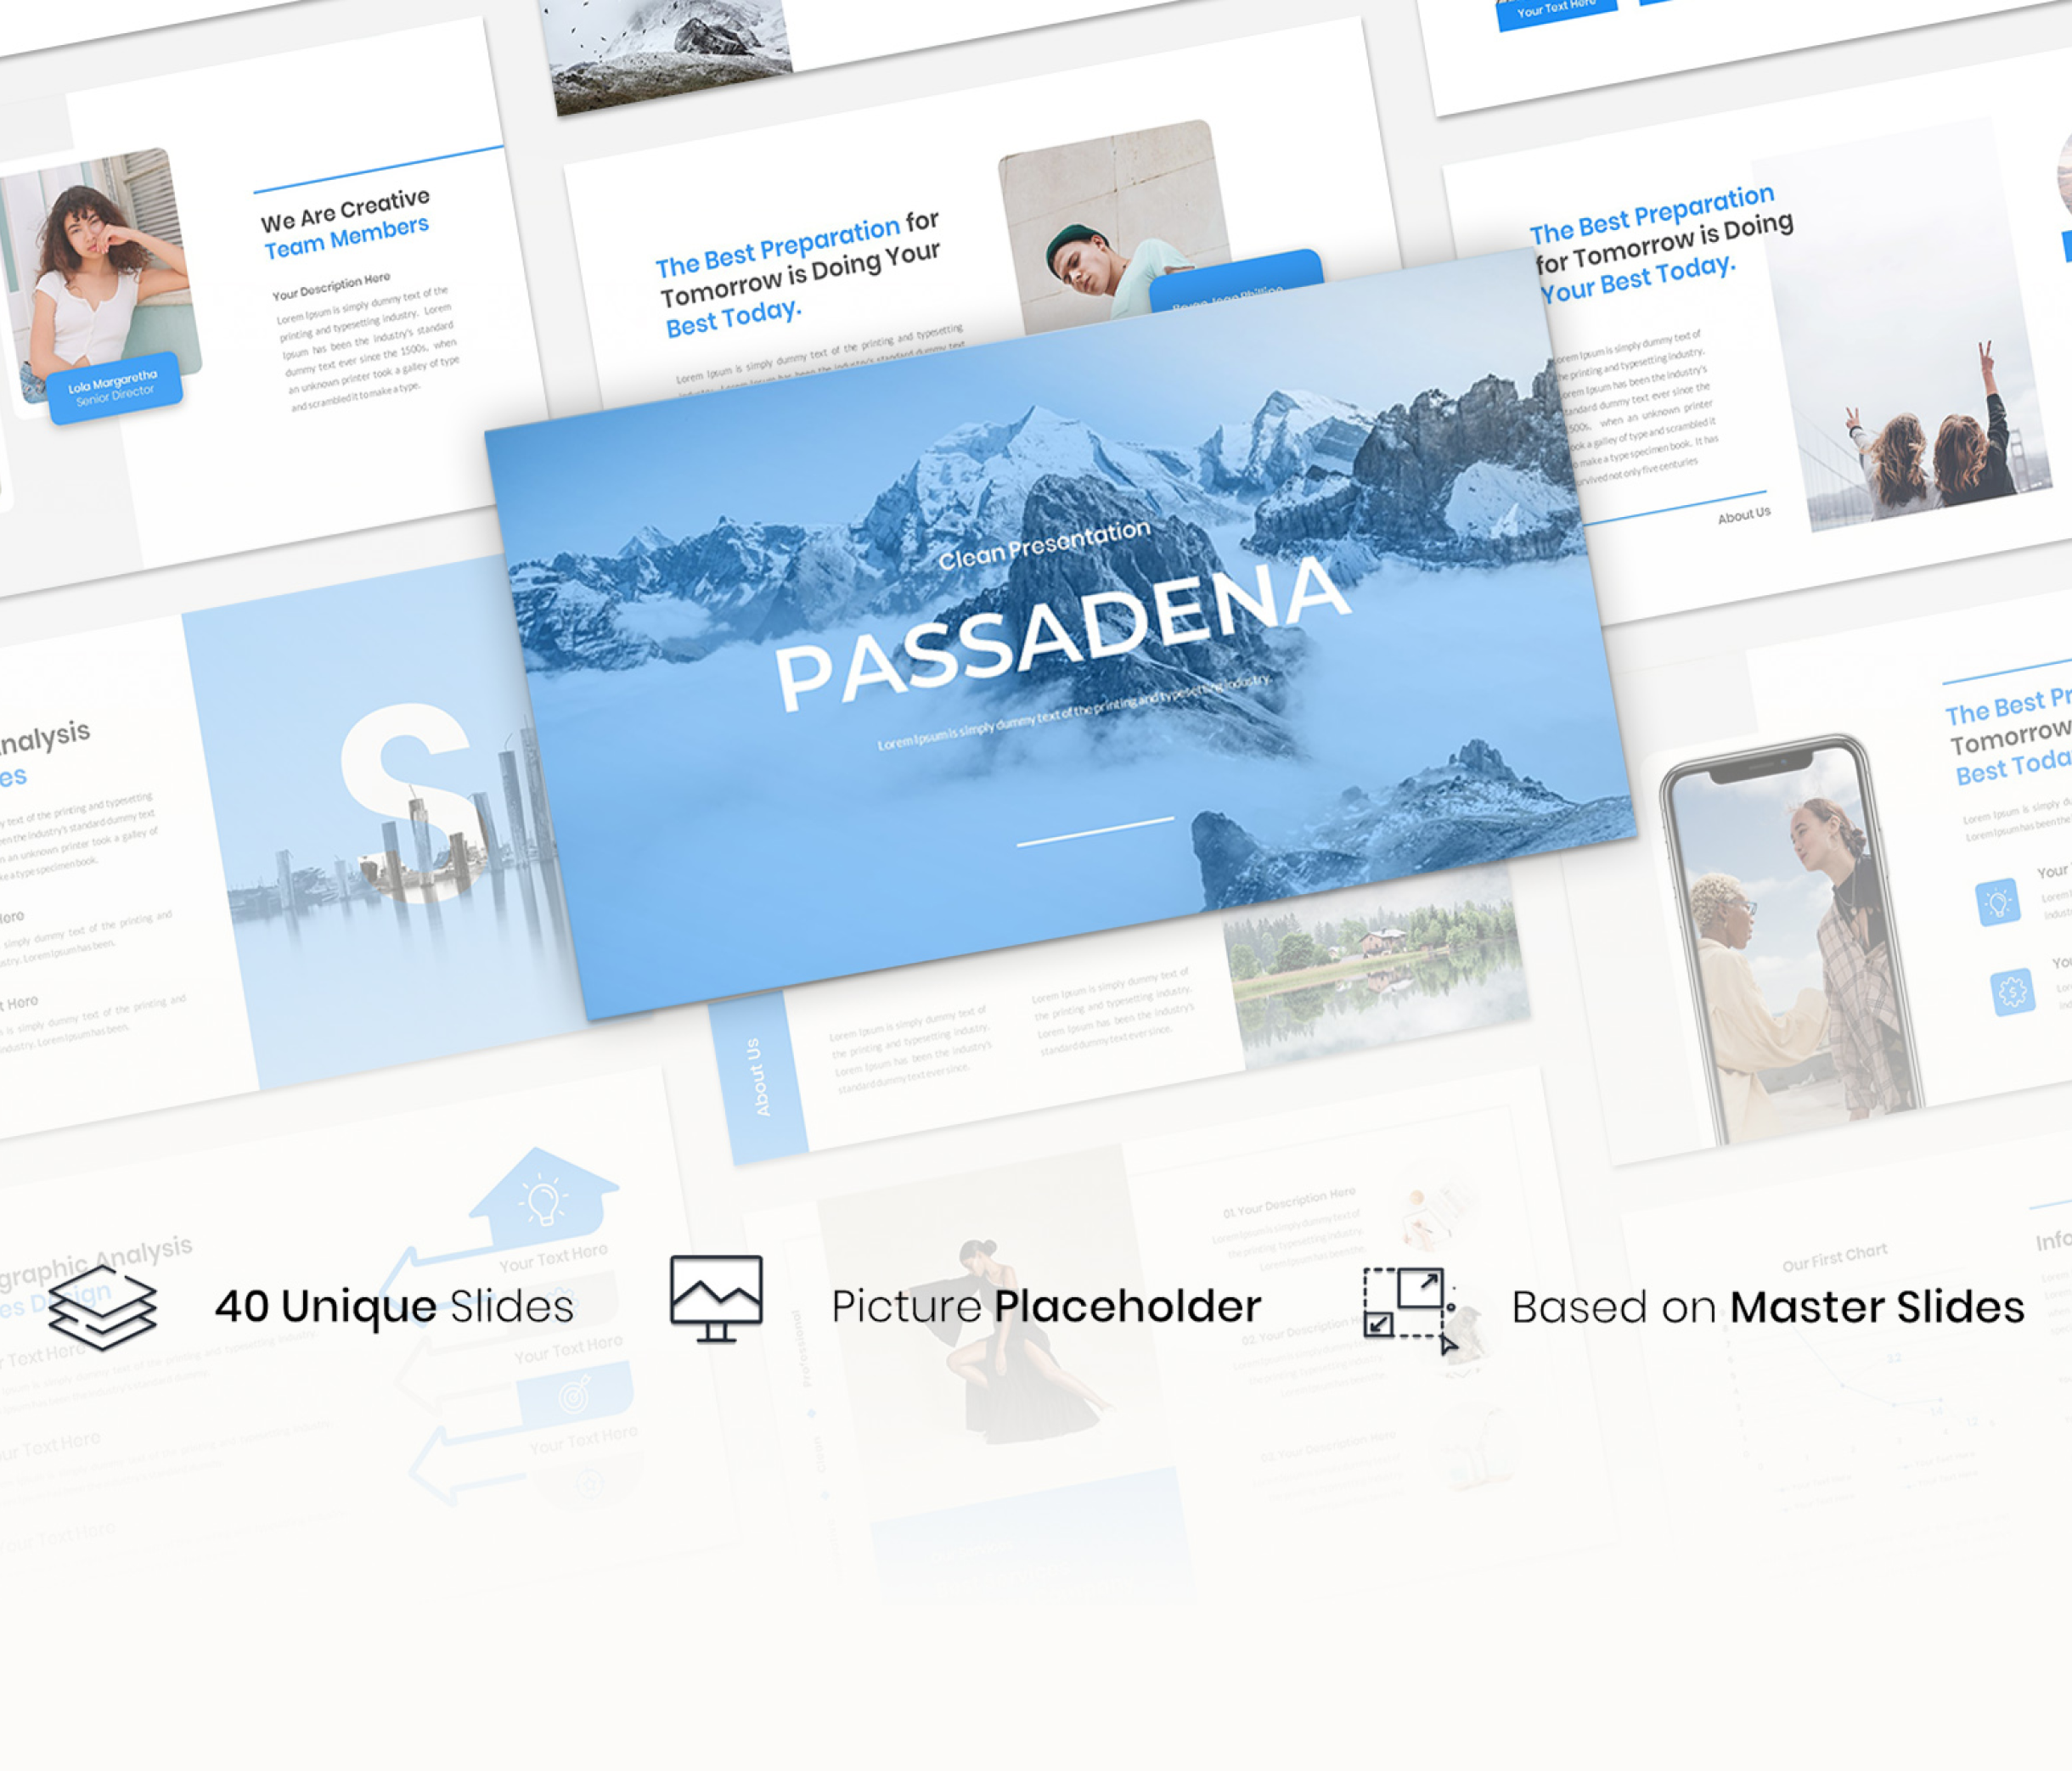 Passadena – Creative Business Presentation powerpoint